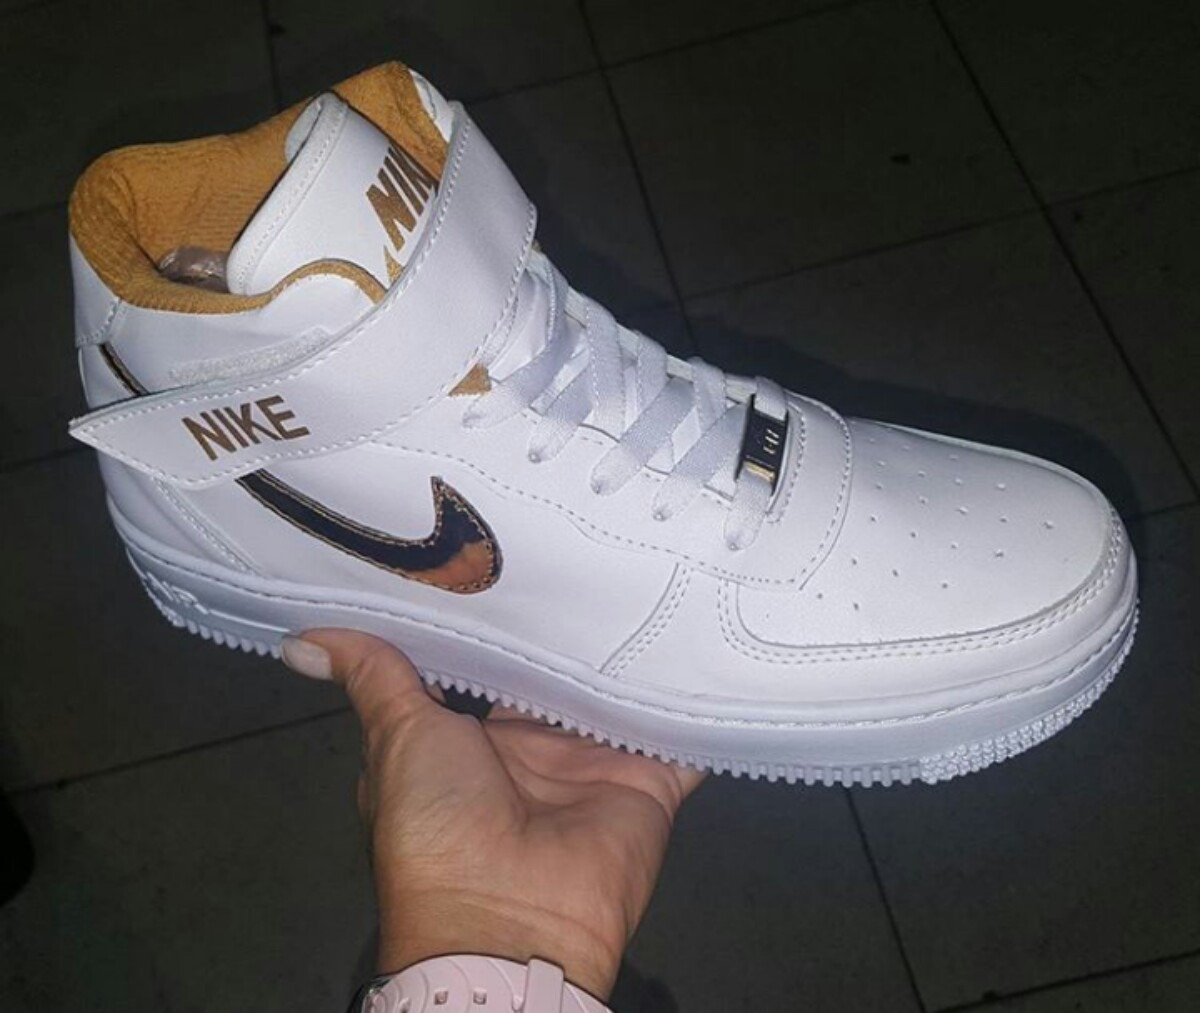 new products 82002 dcde7 zapatos nike force one de caballeros. Cargando zoom.